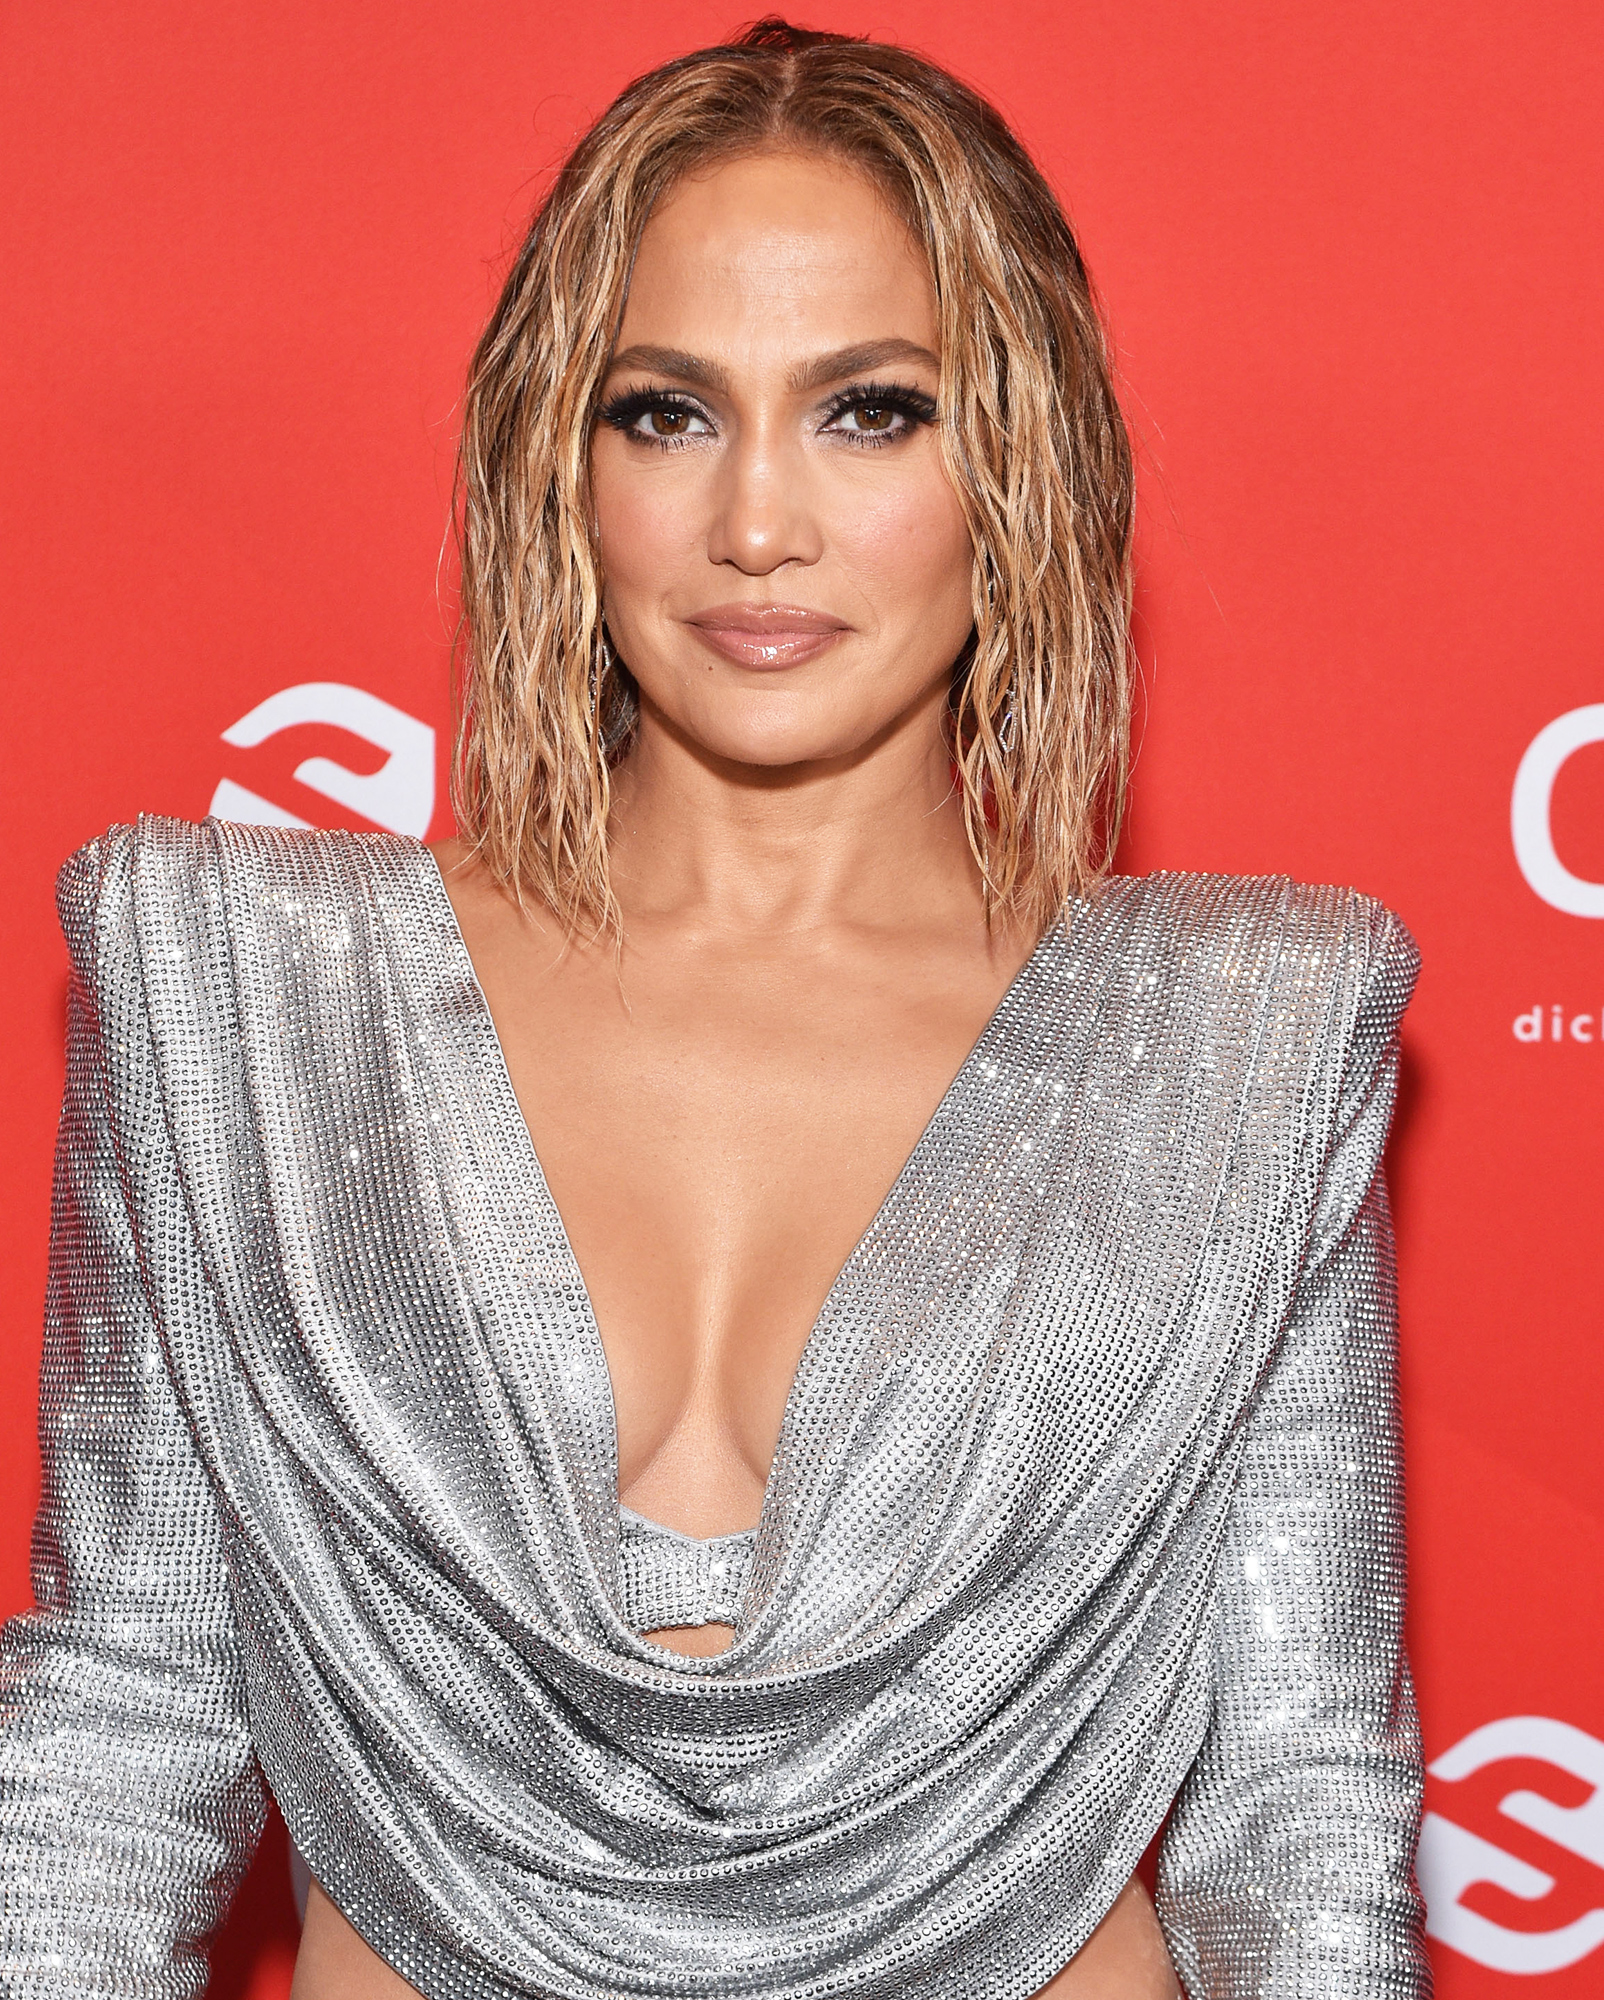 Jennifer Lopez Goes Nude for New Single's Steamy Cover 1